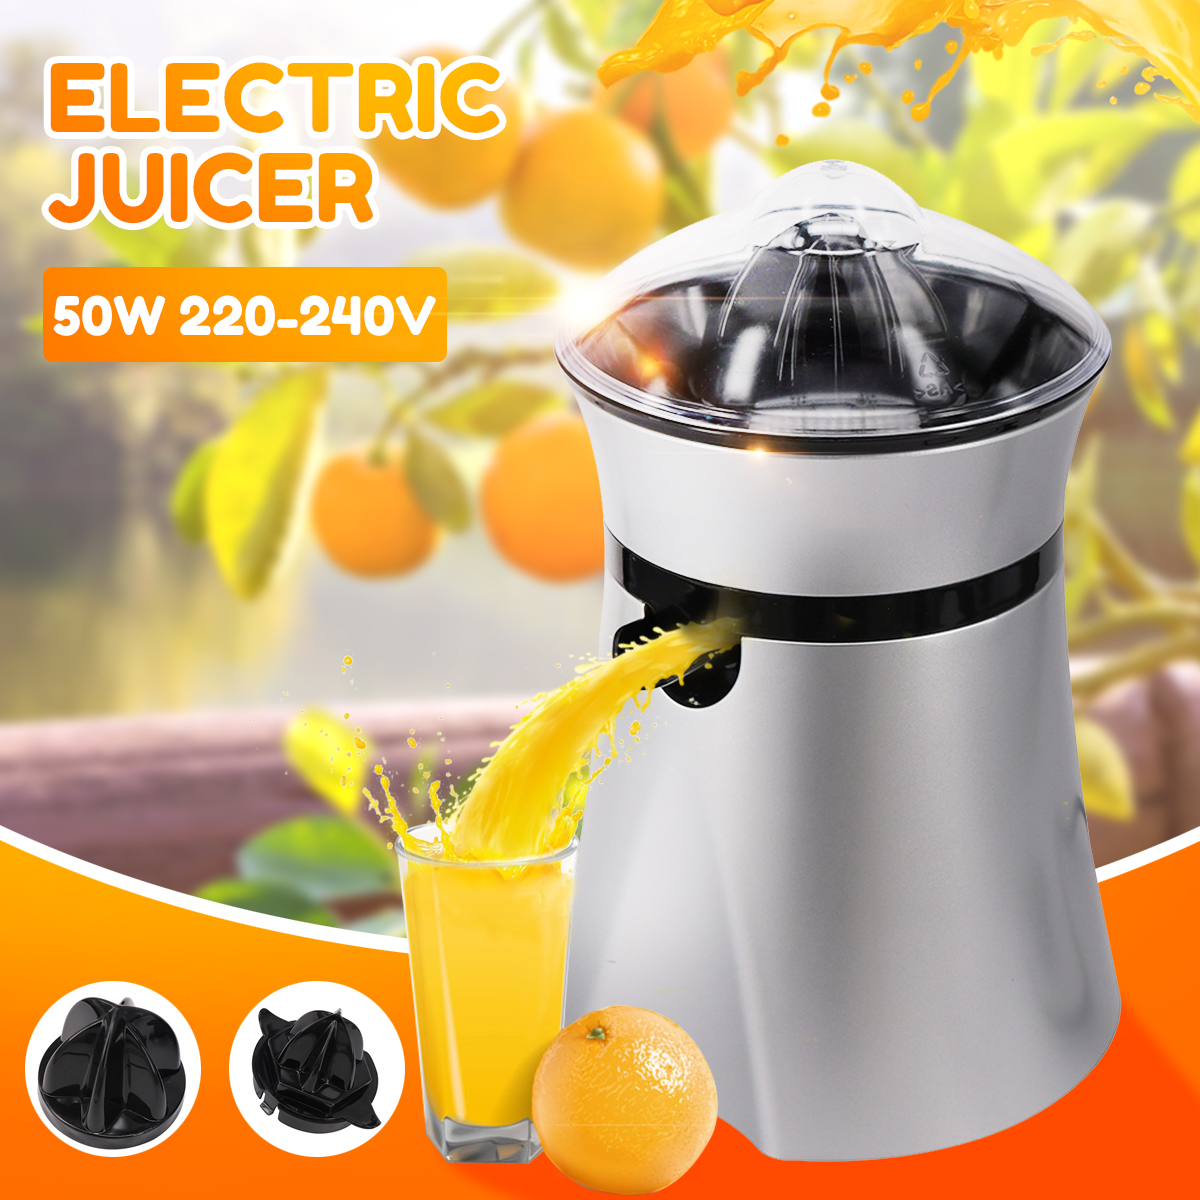 220-240V Electric Juicer Stainless Steel Citrus Orange Fruit Lemon Squeezer Juice Extractor Juice Presser Fruit Drinking Machine